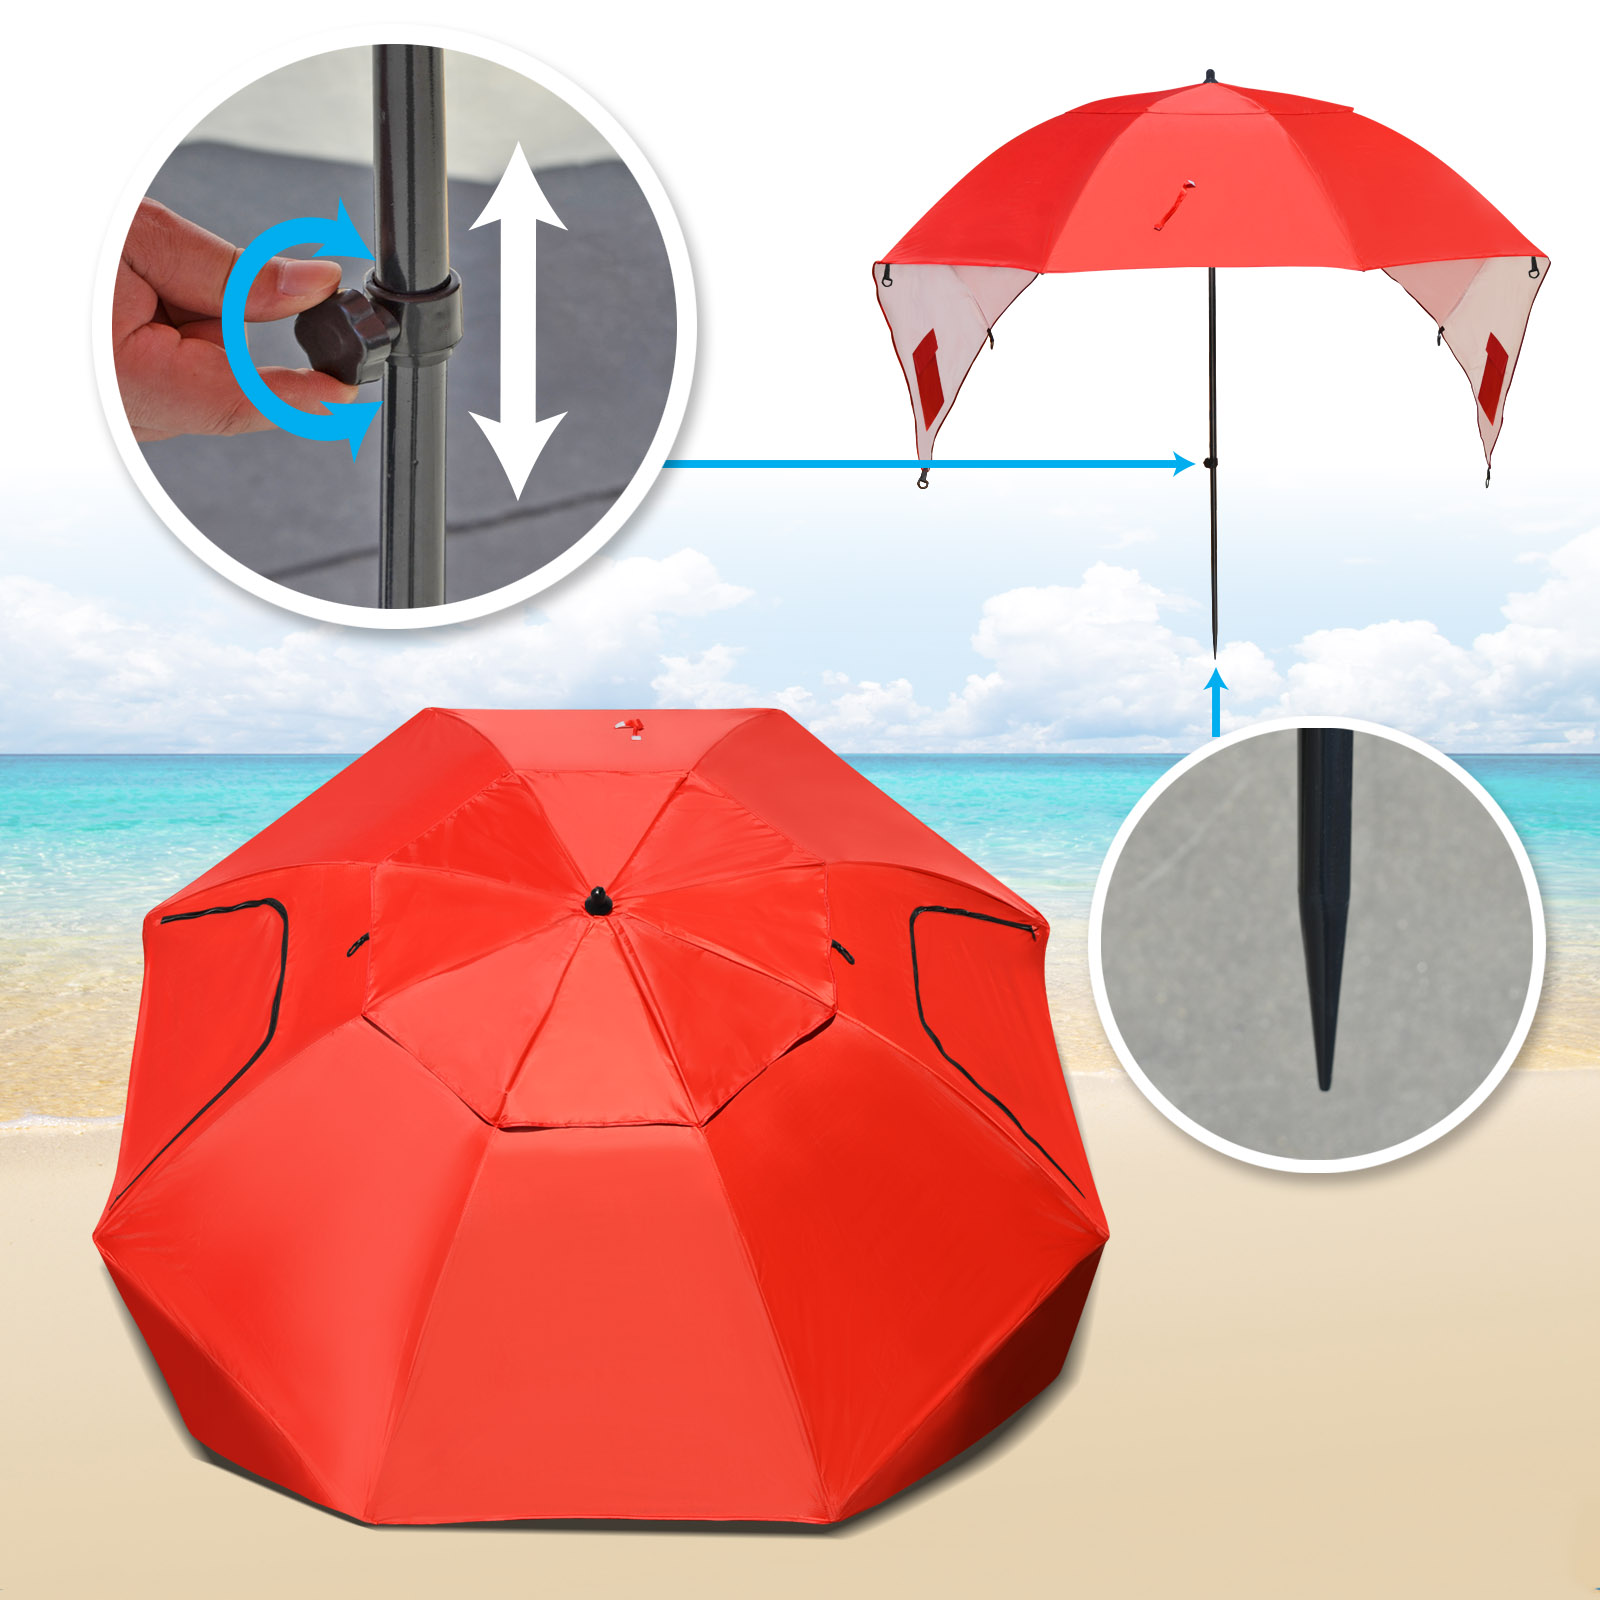 Strong Camel Portable Sun and Weather umbrella Shelter Sport or Beach Canopy Tent 8 Foot Canopy-Red color by Sunny Outdoor Inc